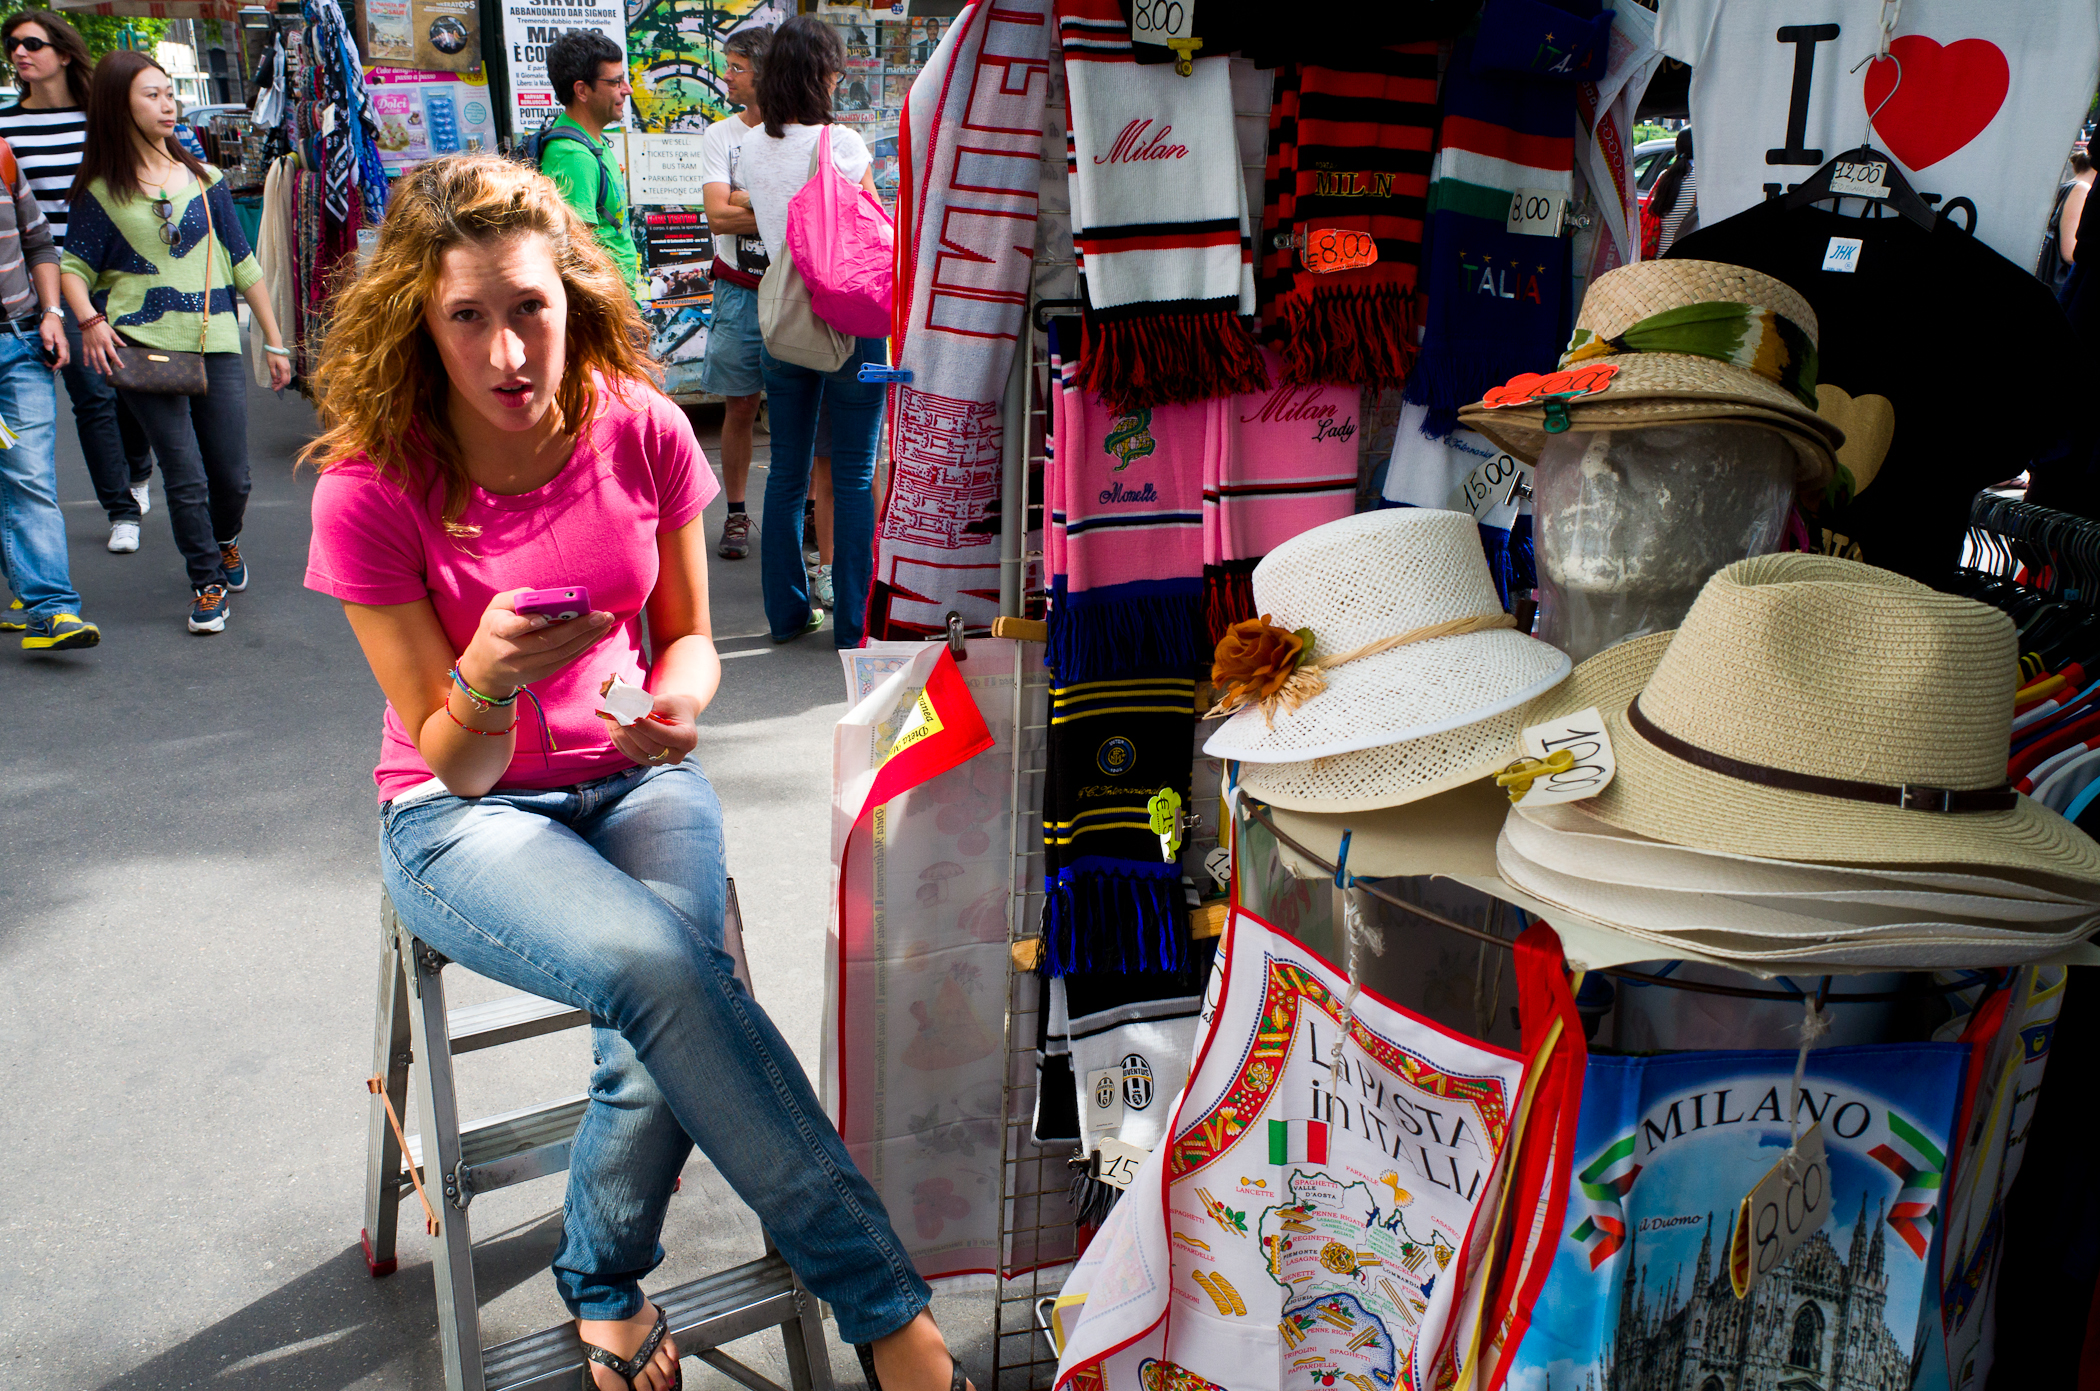 16 - Seller for Tourists